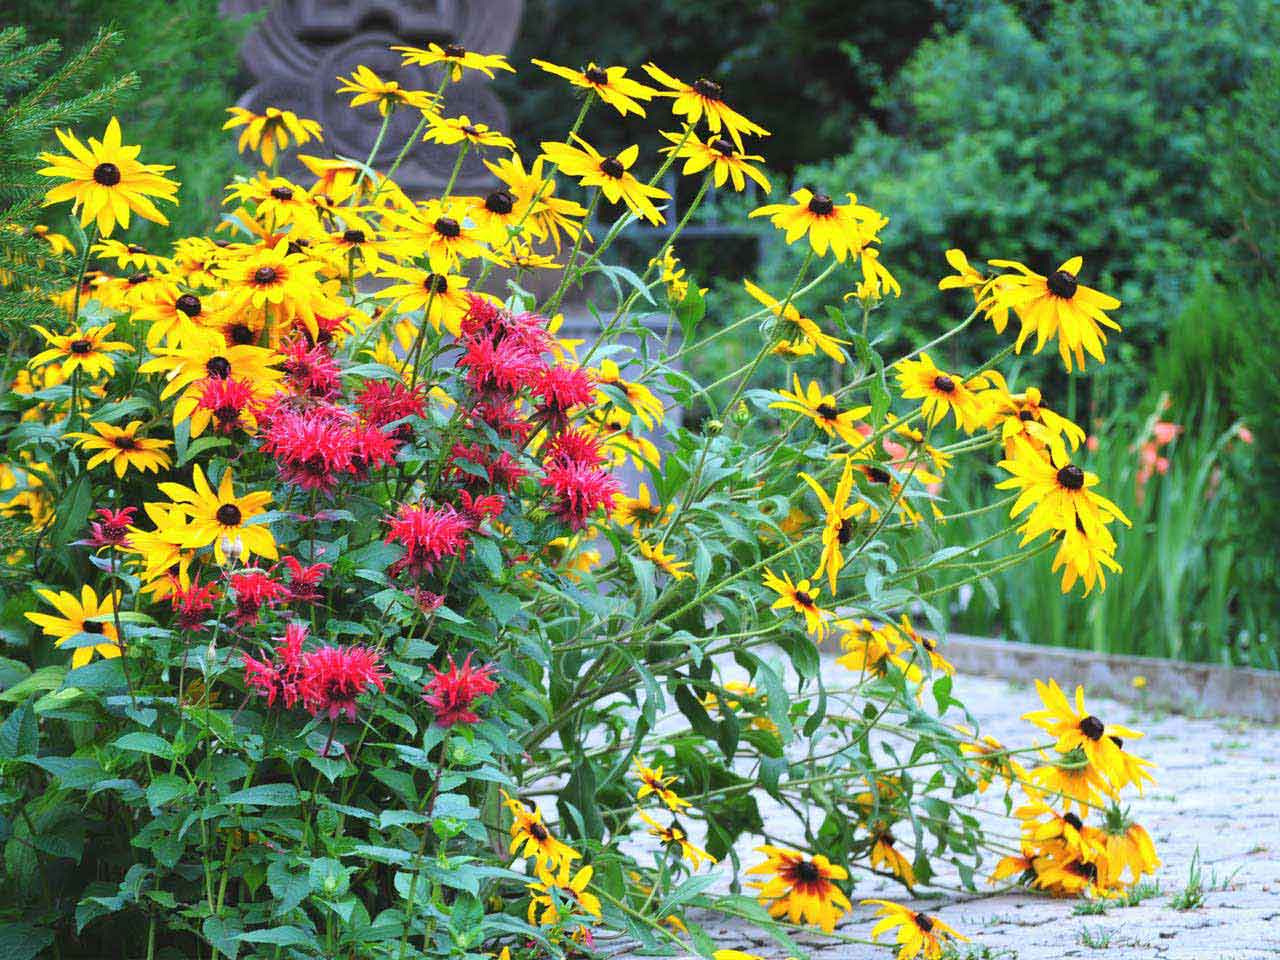 Monarda and rudbeckia both grow well on clay soil